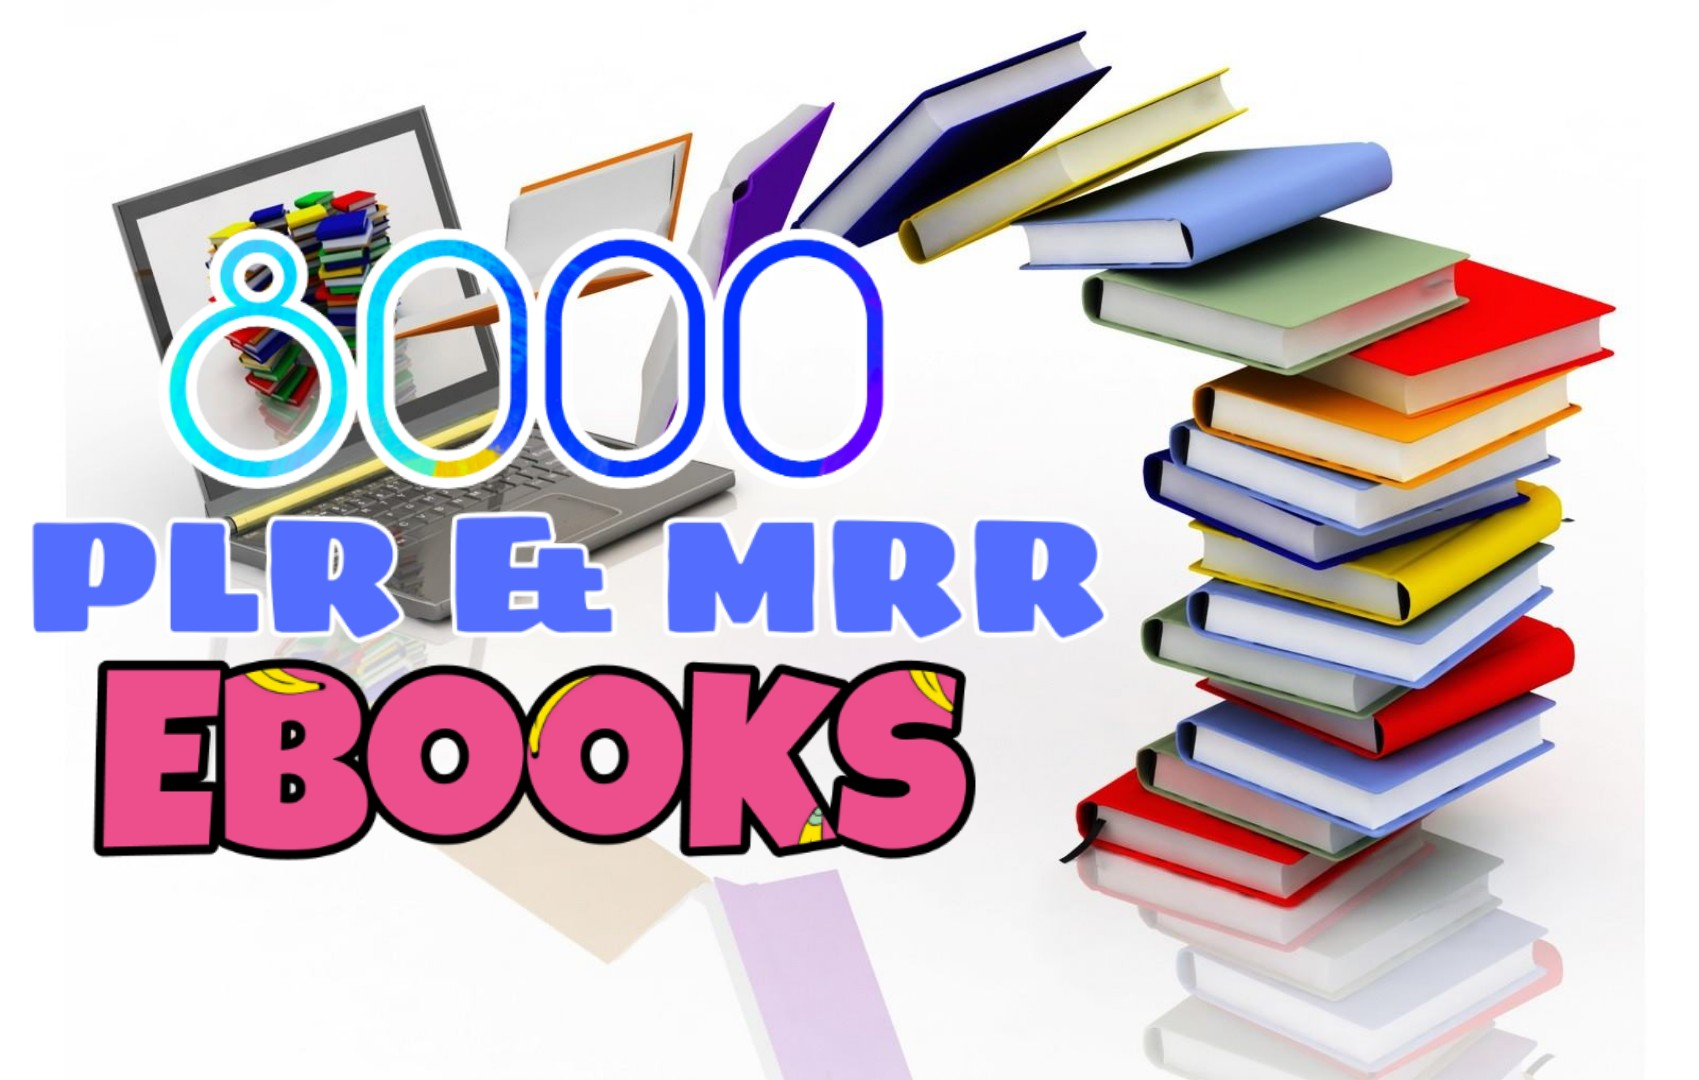 8000+ PLR & MRR eBooks - Mega Pack